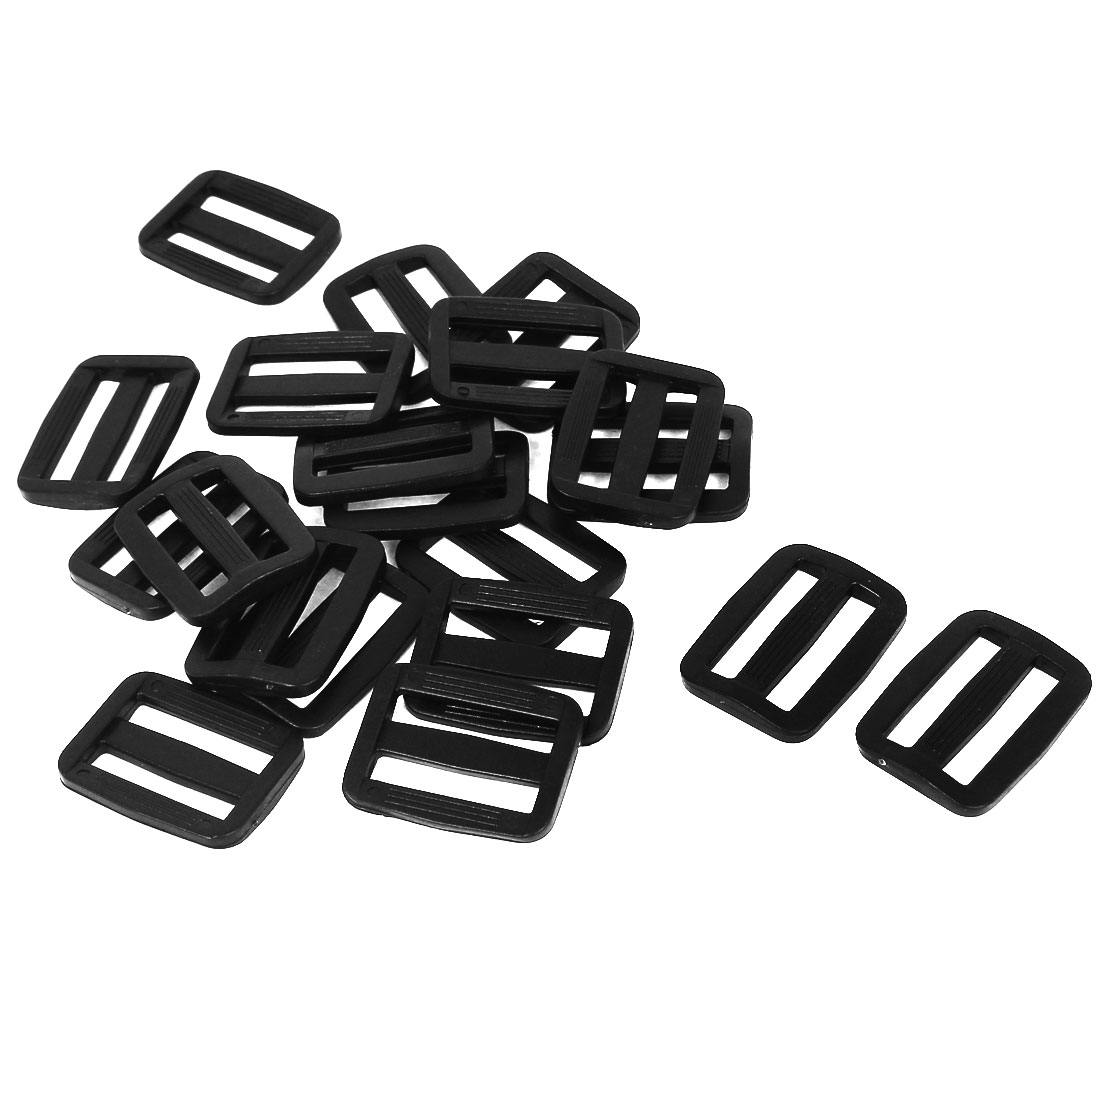 20 Pcs Black Hard Plastic Slide Rectangle Buckle Luggage Bag Replacement 2.5CM